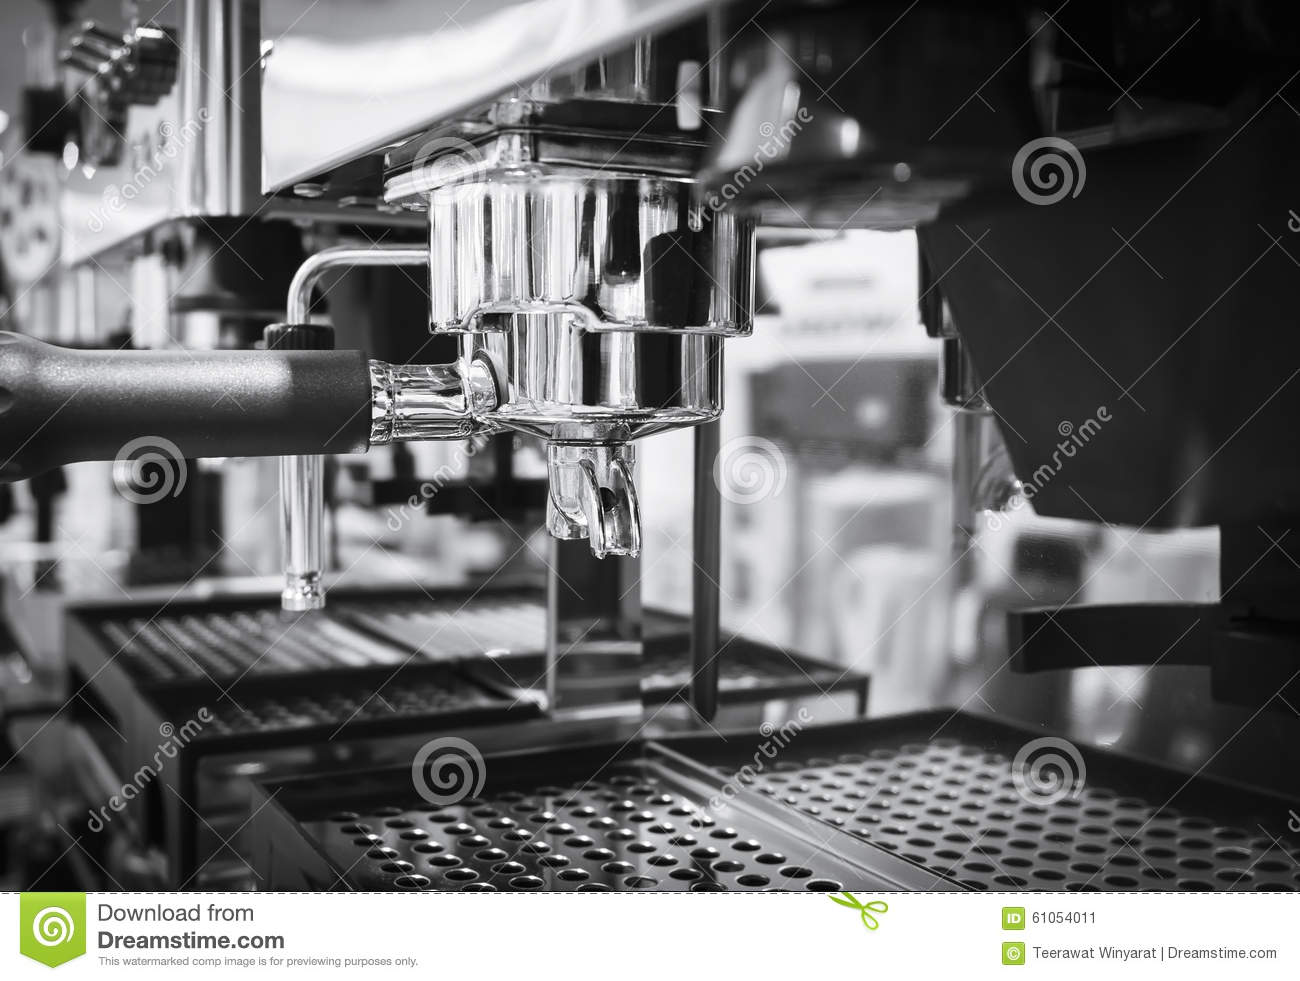 coffee machine cafe restaurant black and white stock image image of professional barista. Black Bedroom Furniture Sets. Home Design Ideas